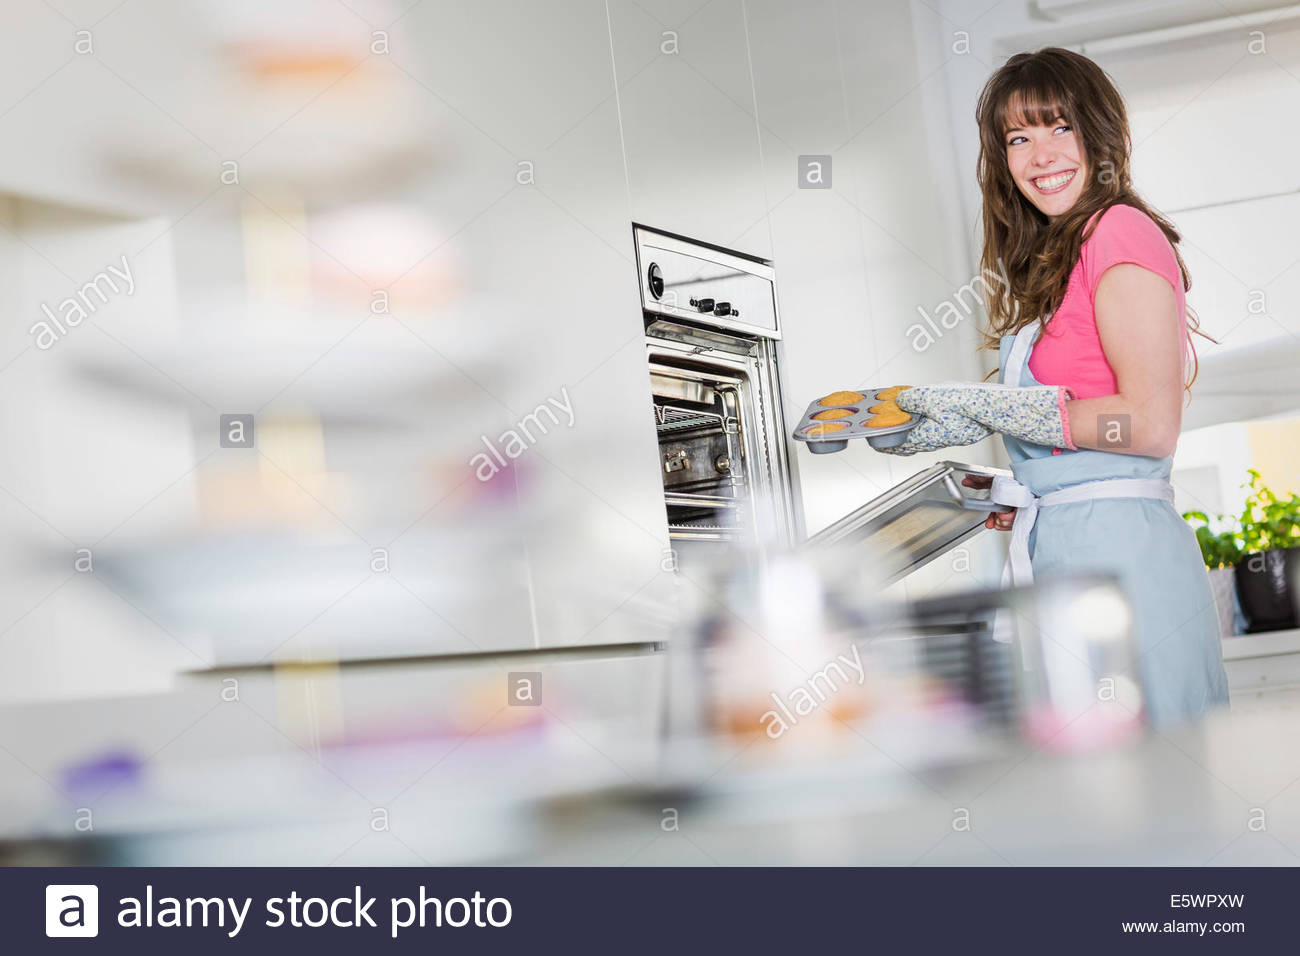 Woman removing cupcakes from oven - Stock Image